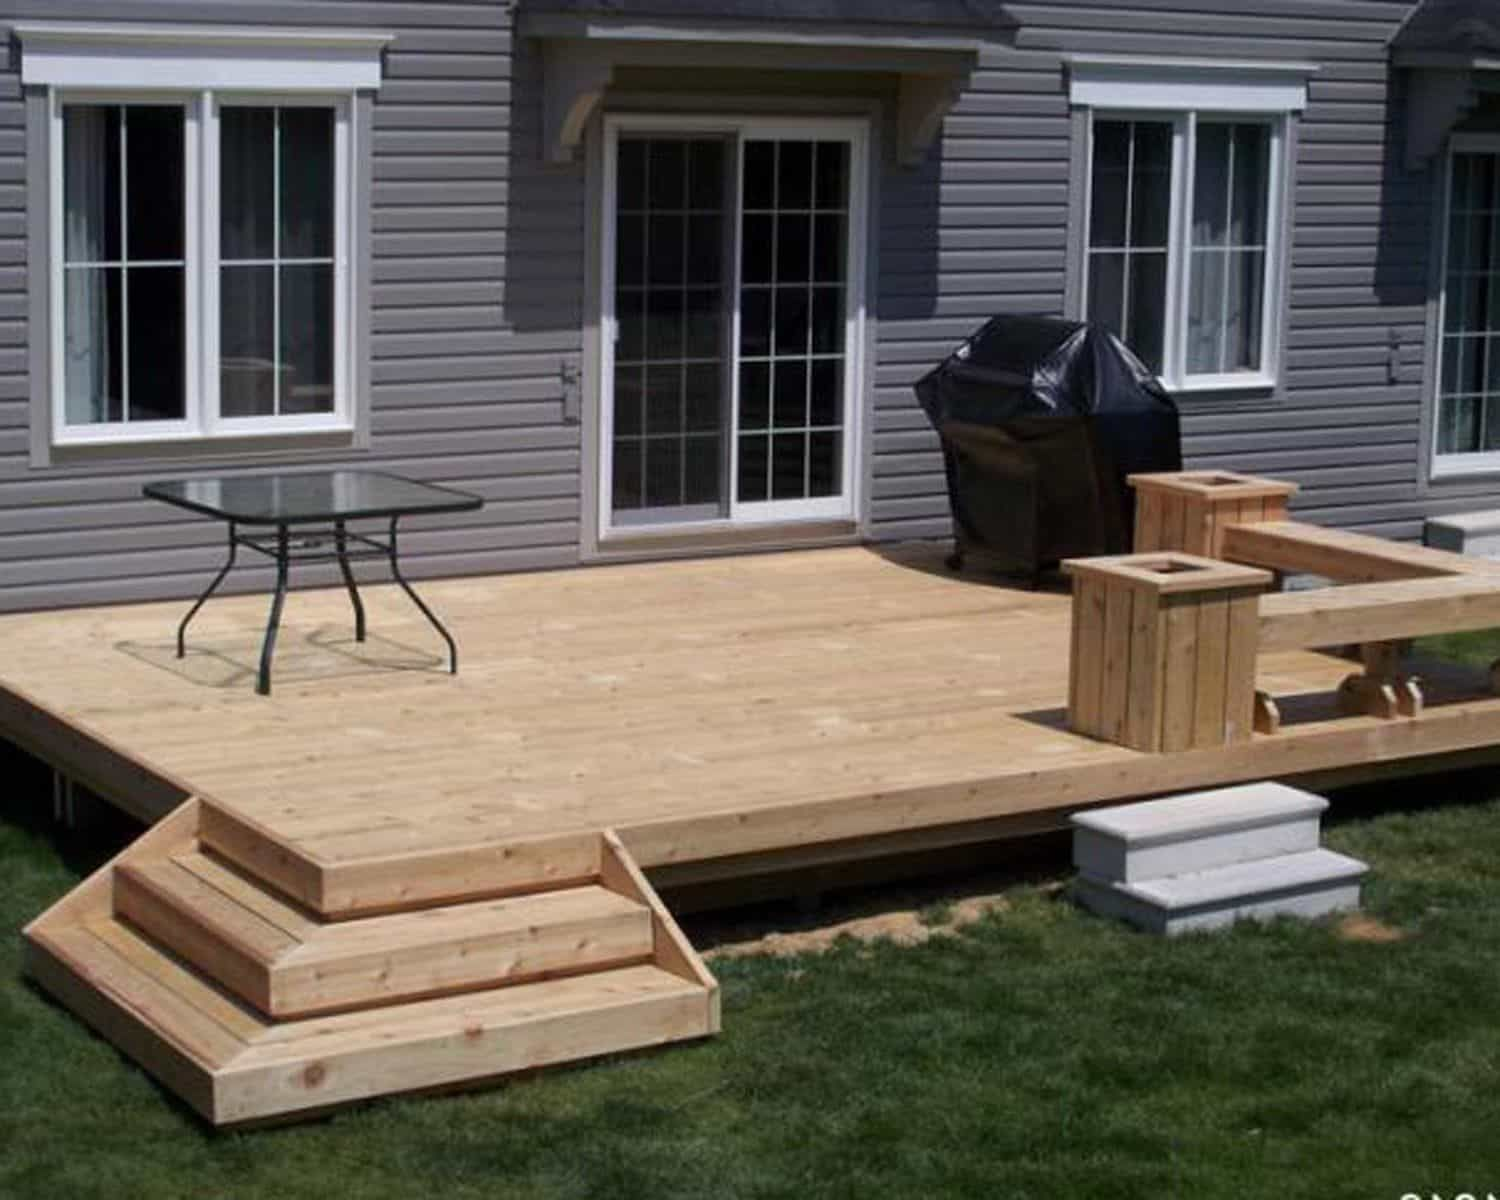 Simple Decoration For Small Backyard Deck Design Idea Outdoor